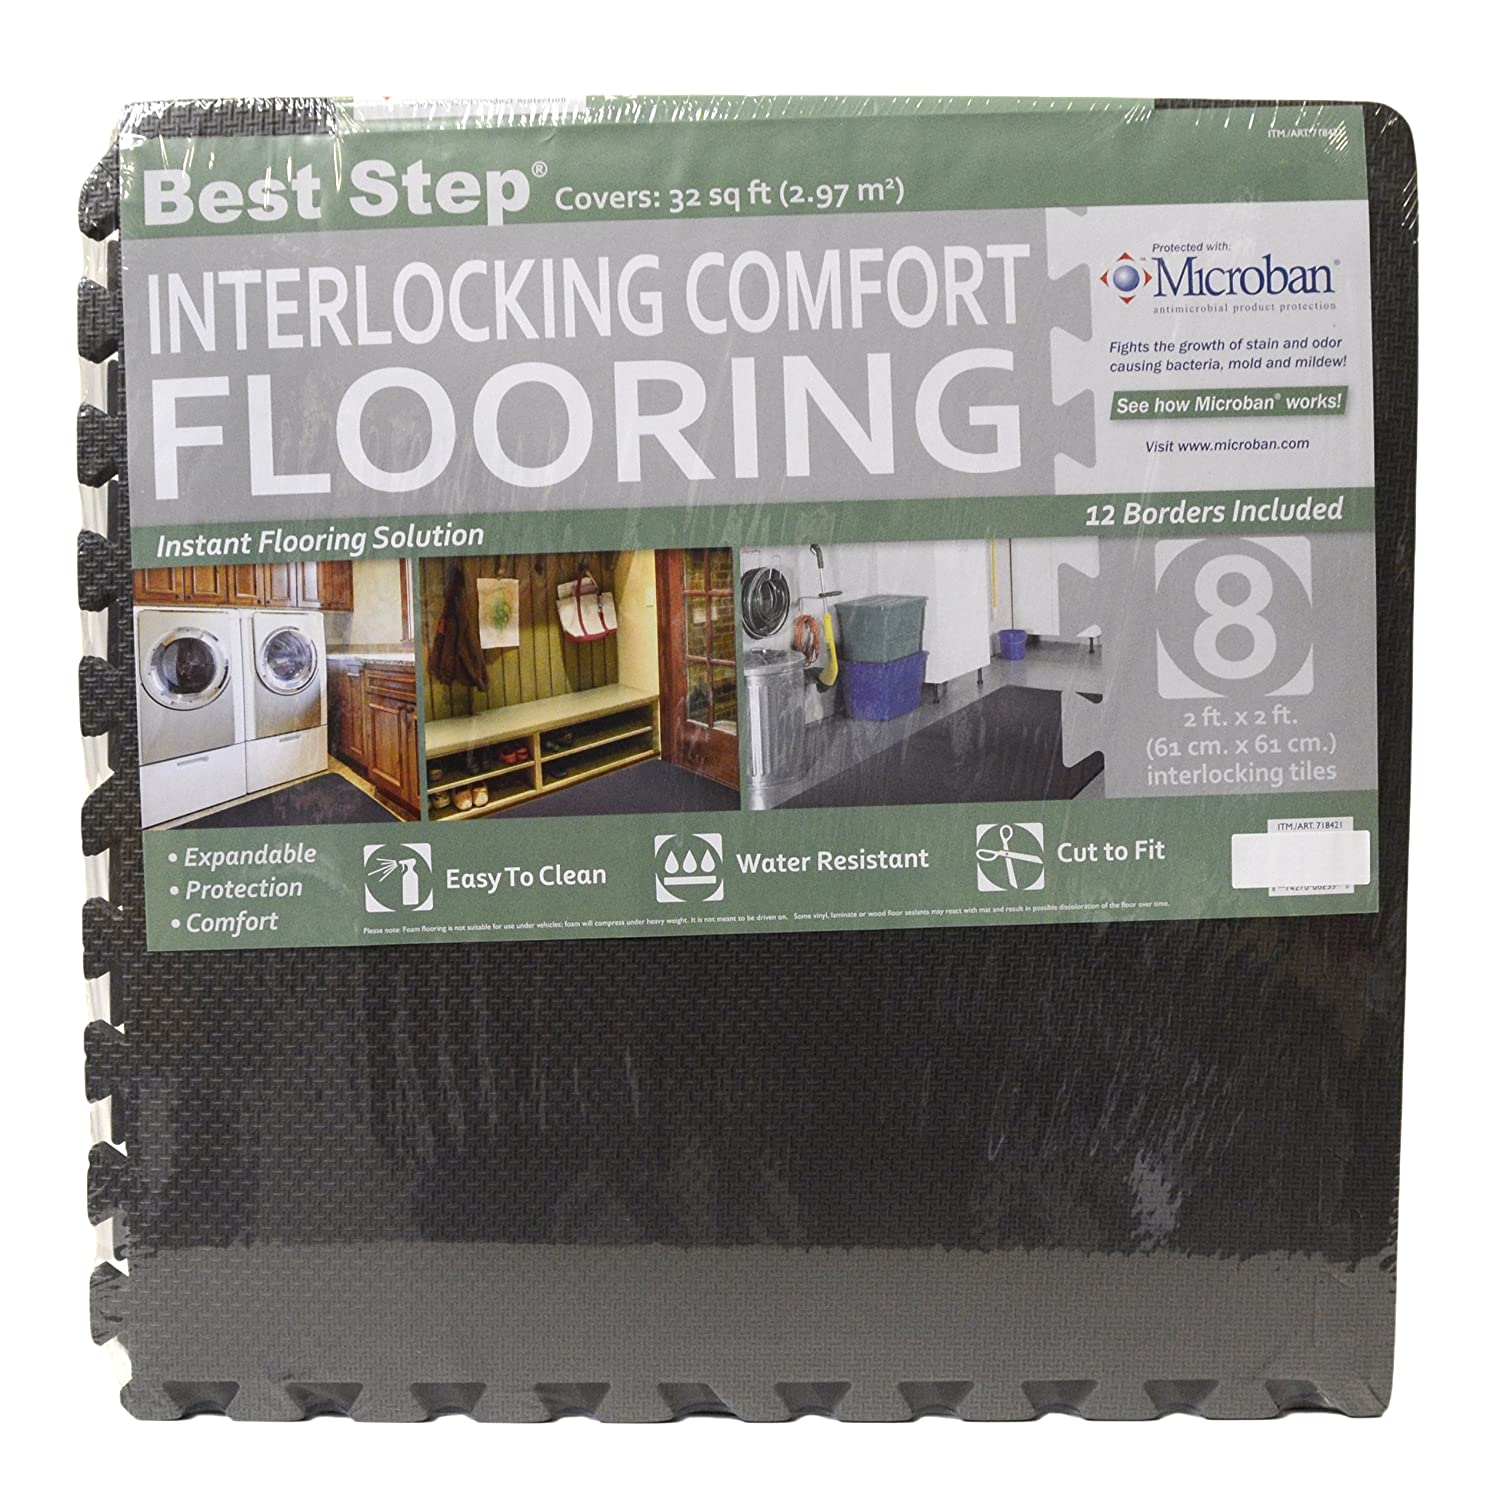 Amazon best step interlocking comfort flooring 8 pack plus amazon best step interlocking comfort flooring 8 pack plus borders 2 x 2 x 38 one pack of 8 tiles 32 sq ft dailygadgetfo Images